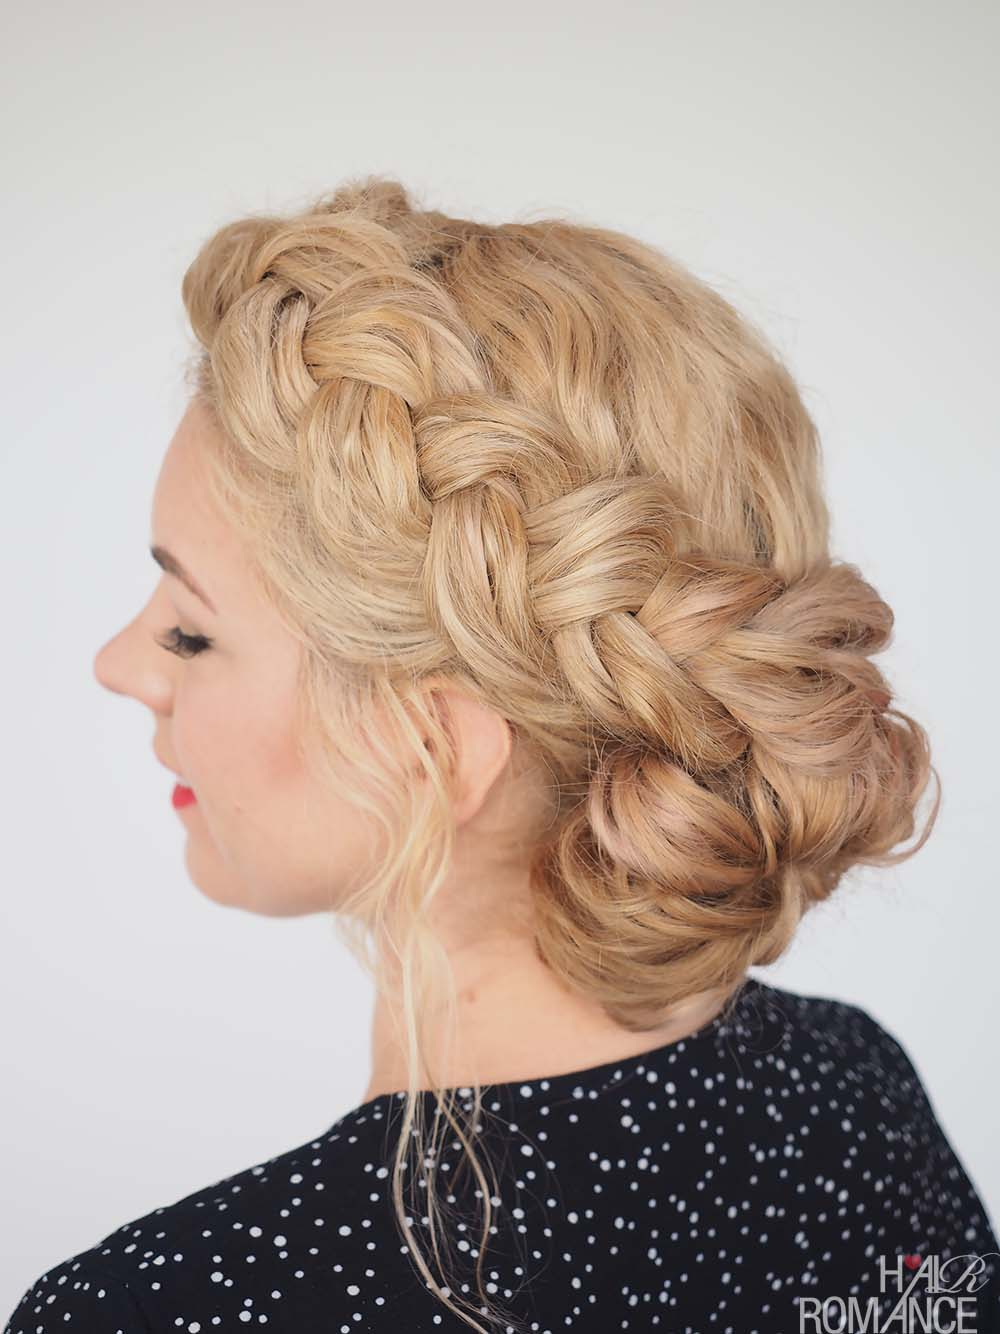 Hair Romance - Great Hair Fast - Braid Tutorial for Messy Curly Hair